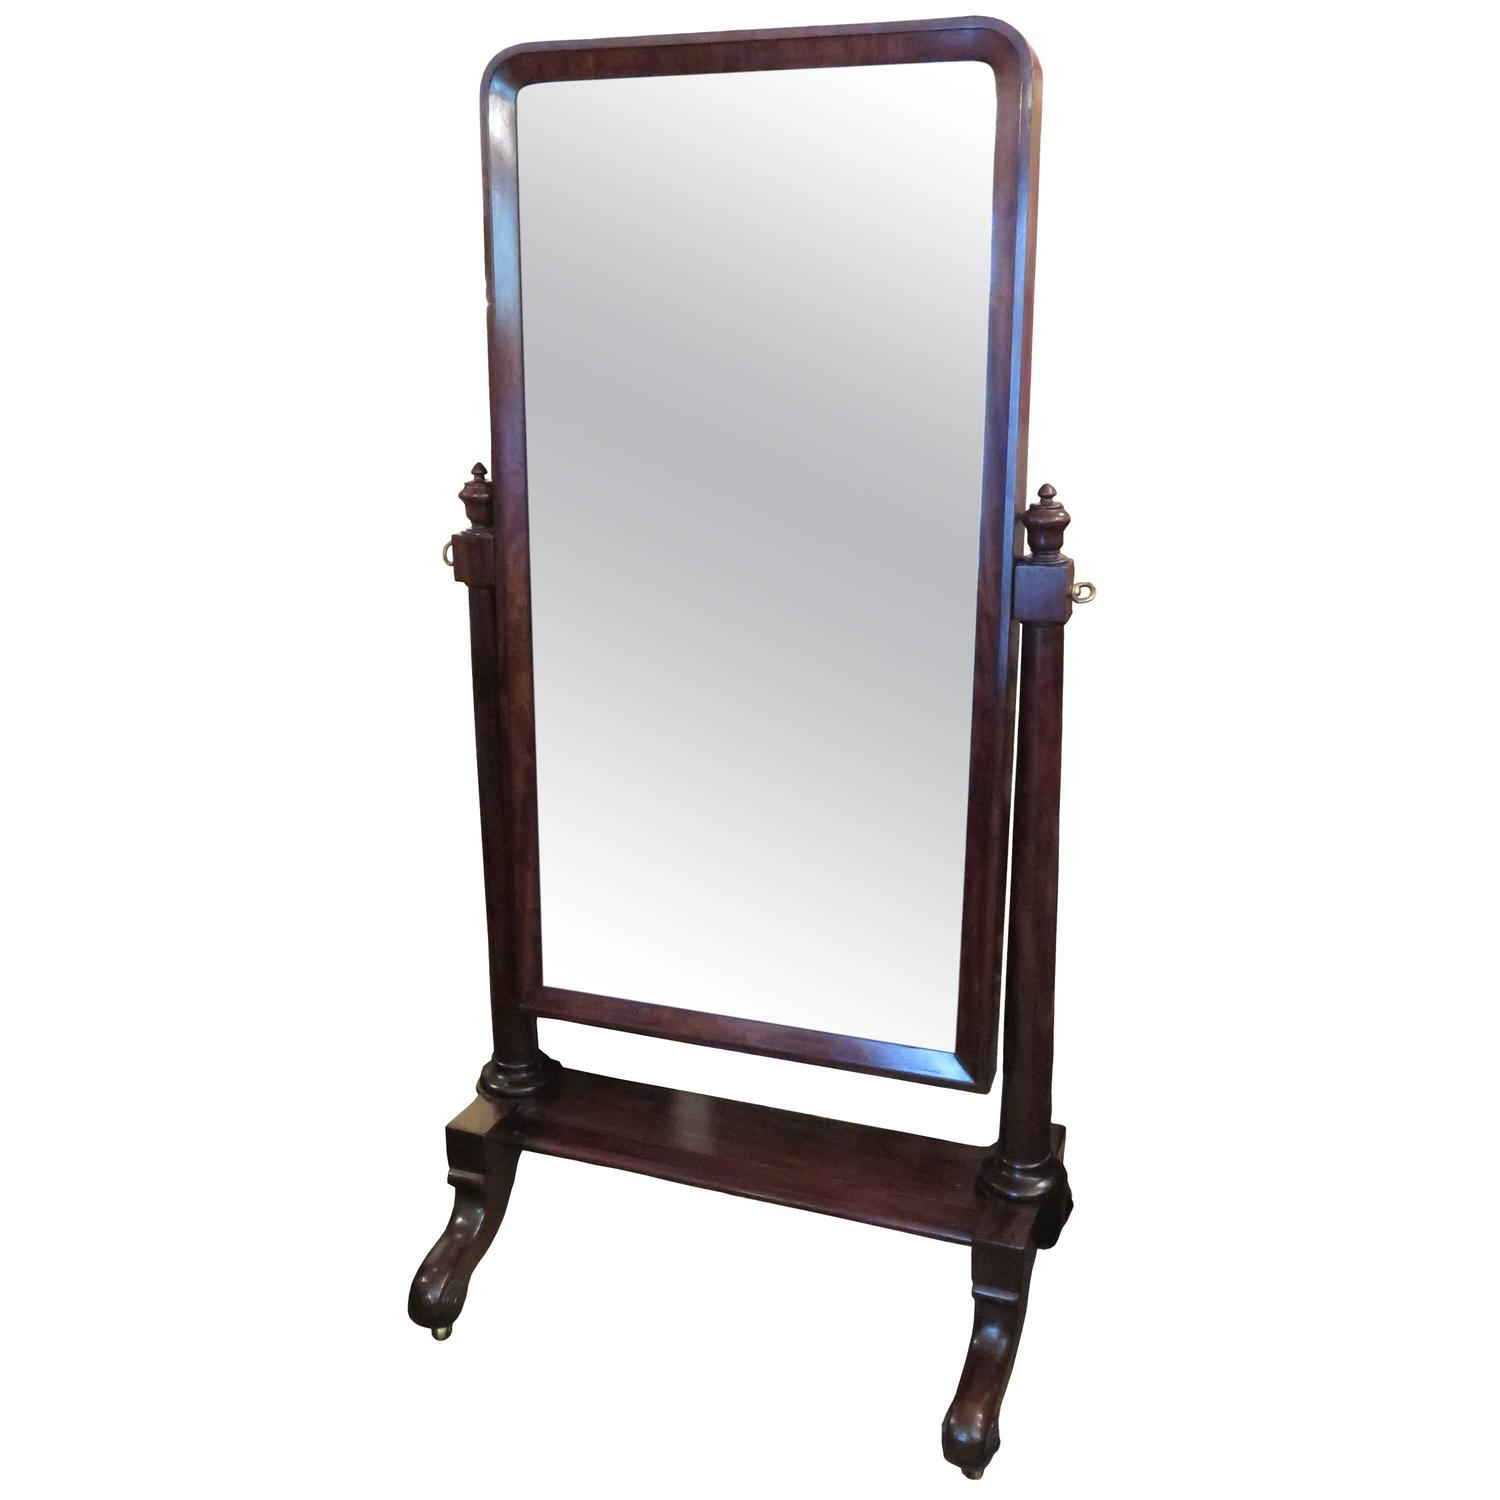 French cheval mirror for sale at 1stdibs for Floor length mirror for sale